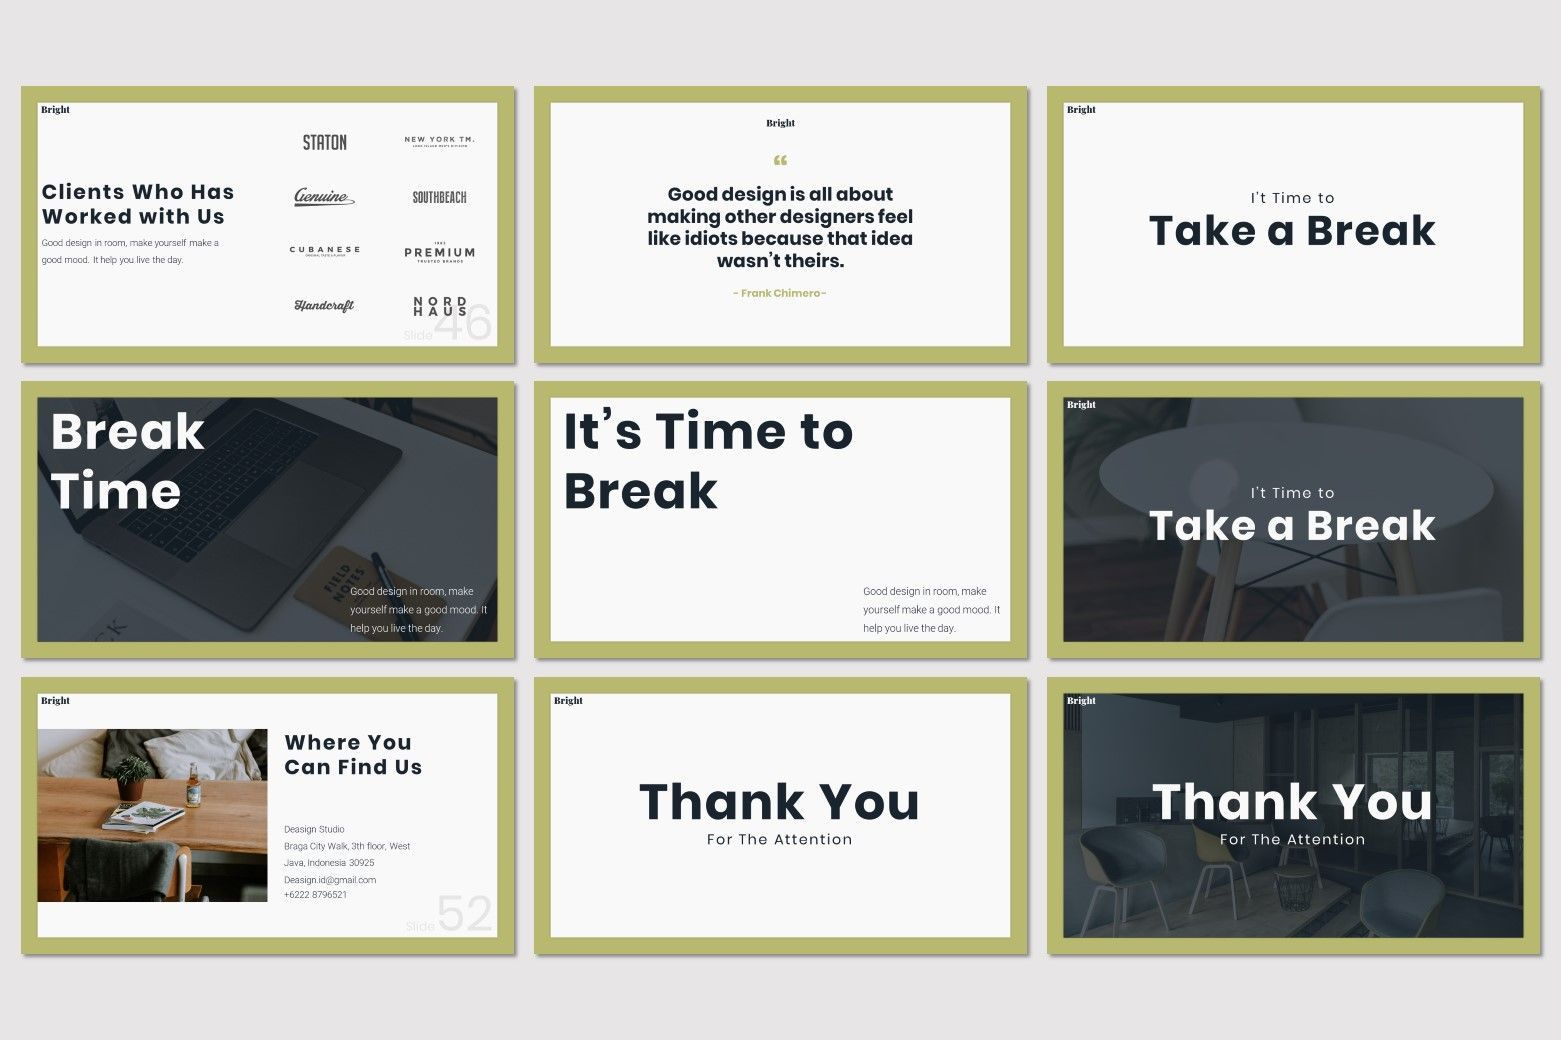 Bright - Google Slides Template, Slide 8, 07587, Presentation Templates — PoweredTemplate.com